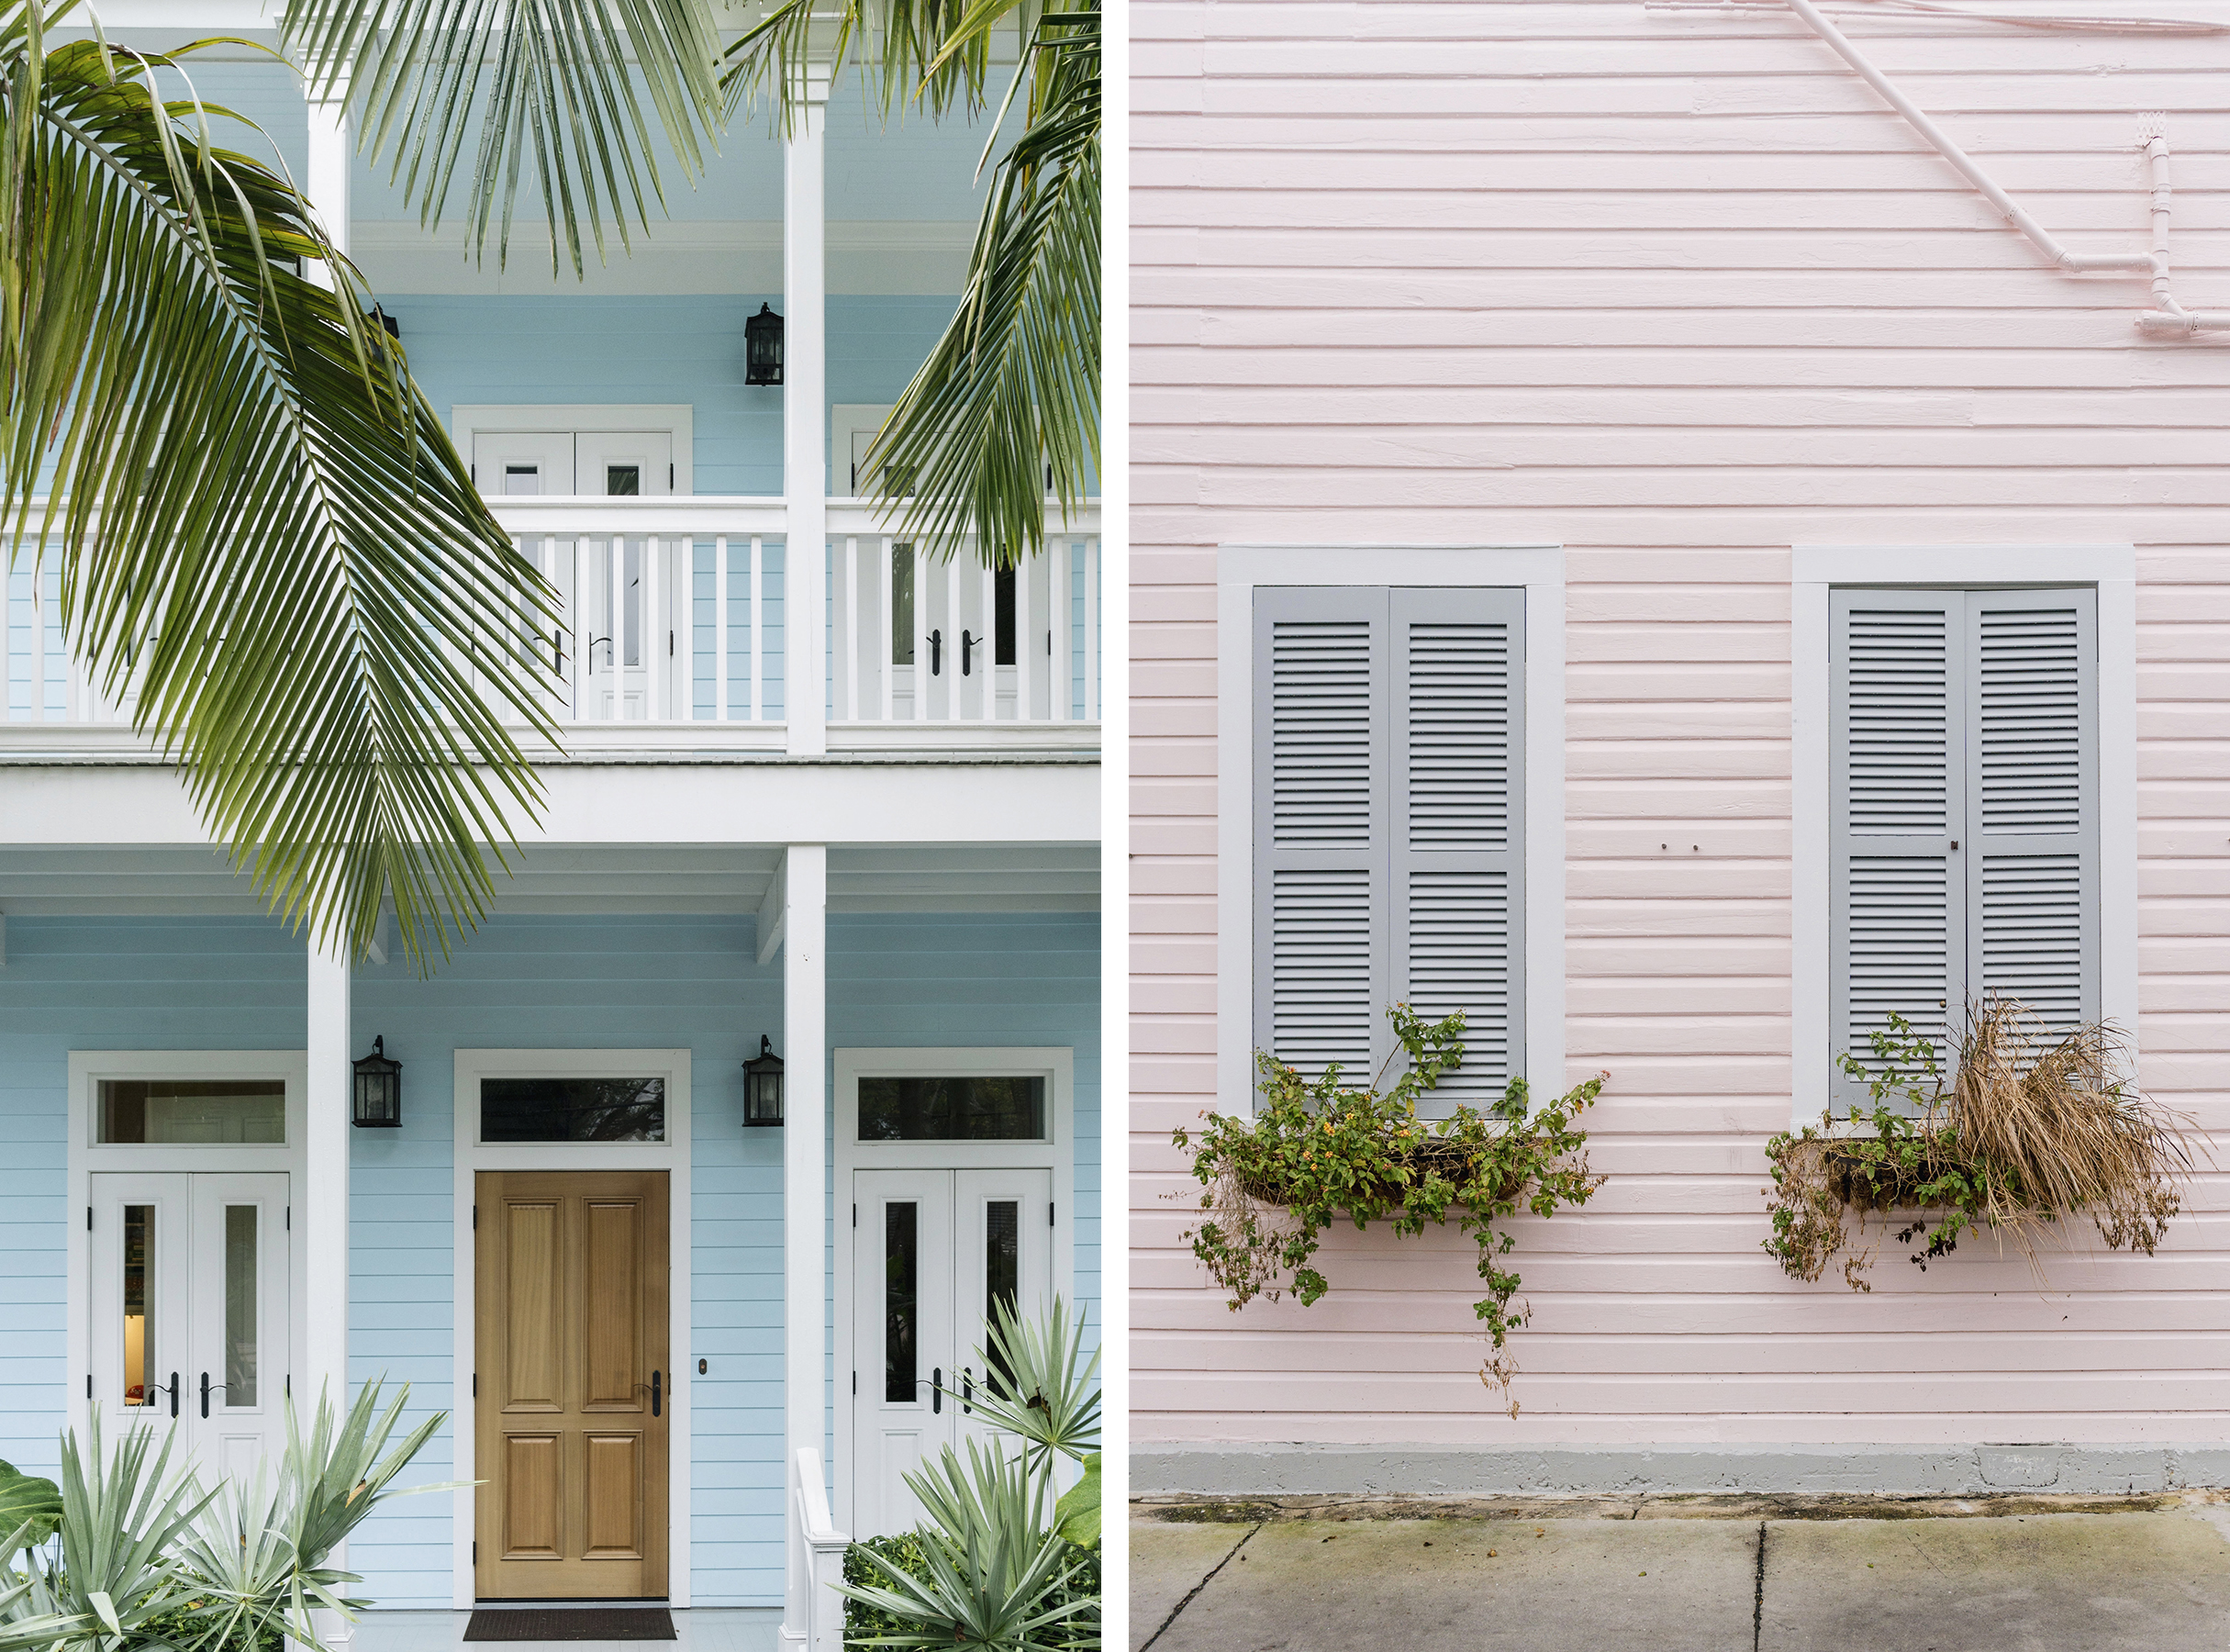 Key West pastel houses / colonial architecture - Florida Keys with young kids | Happy Grey Lucky